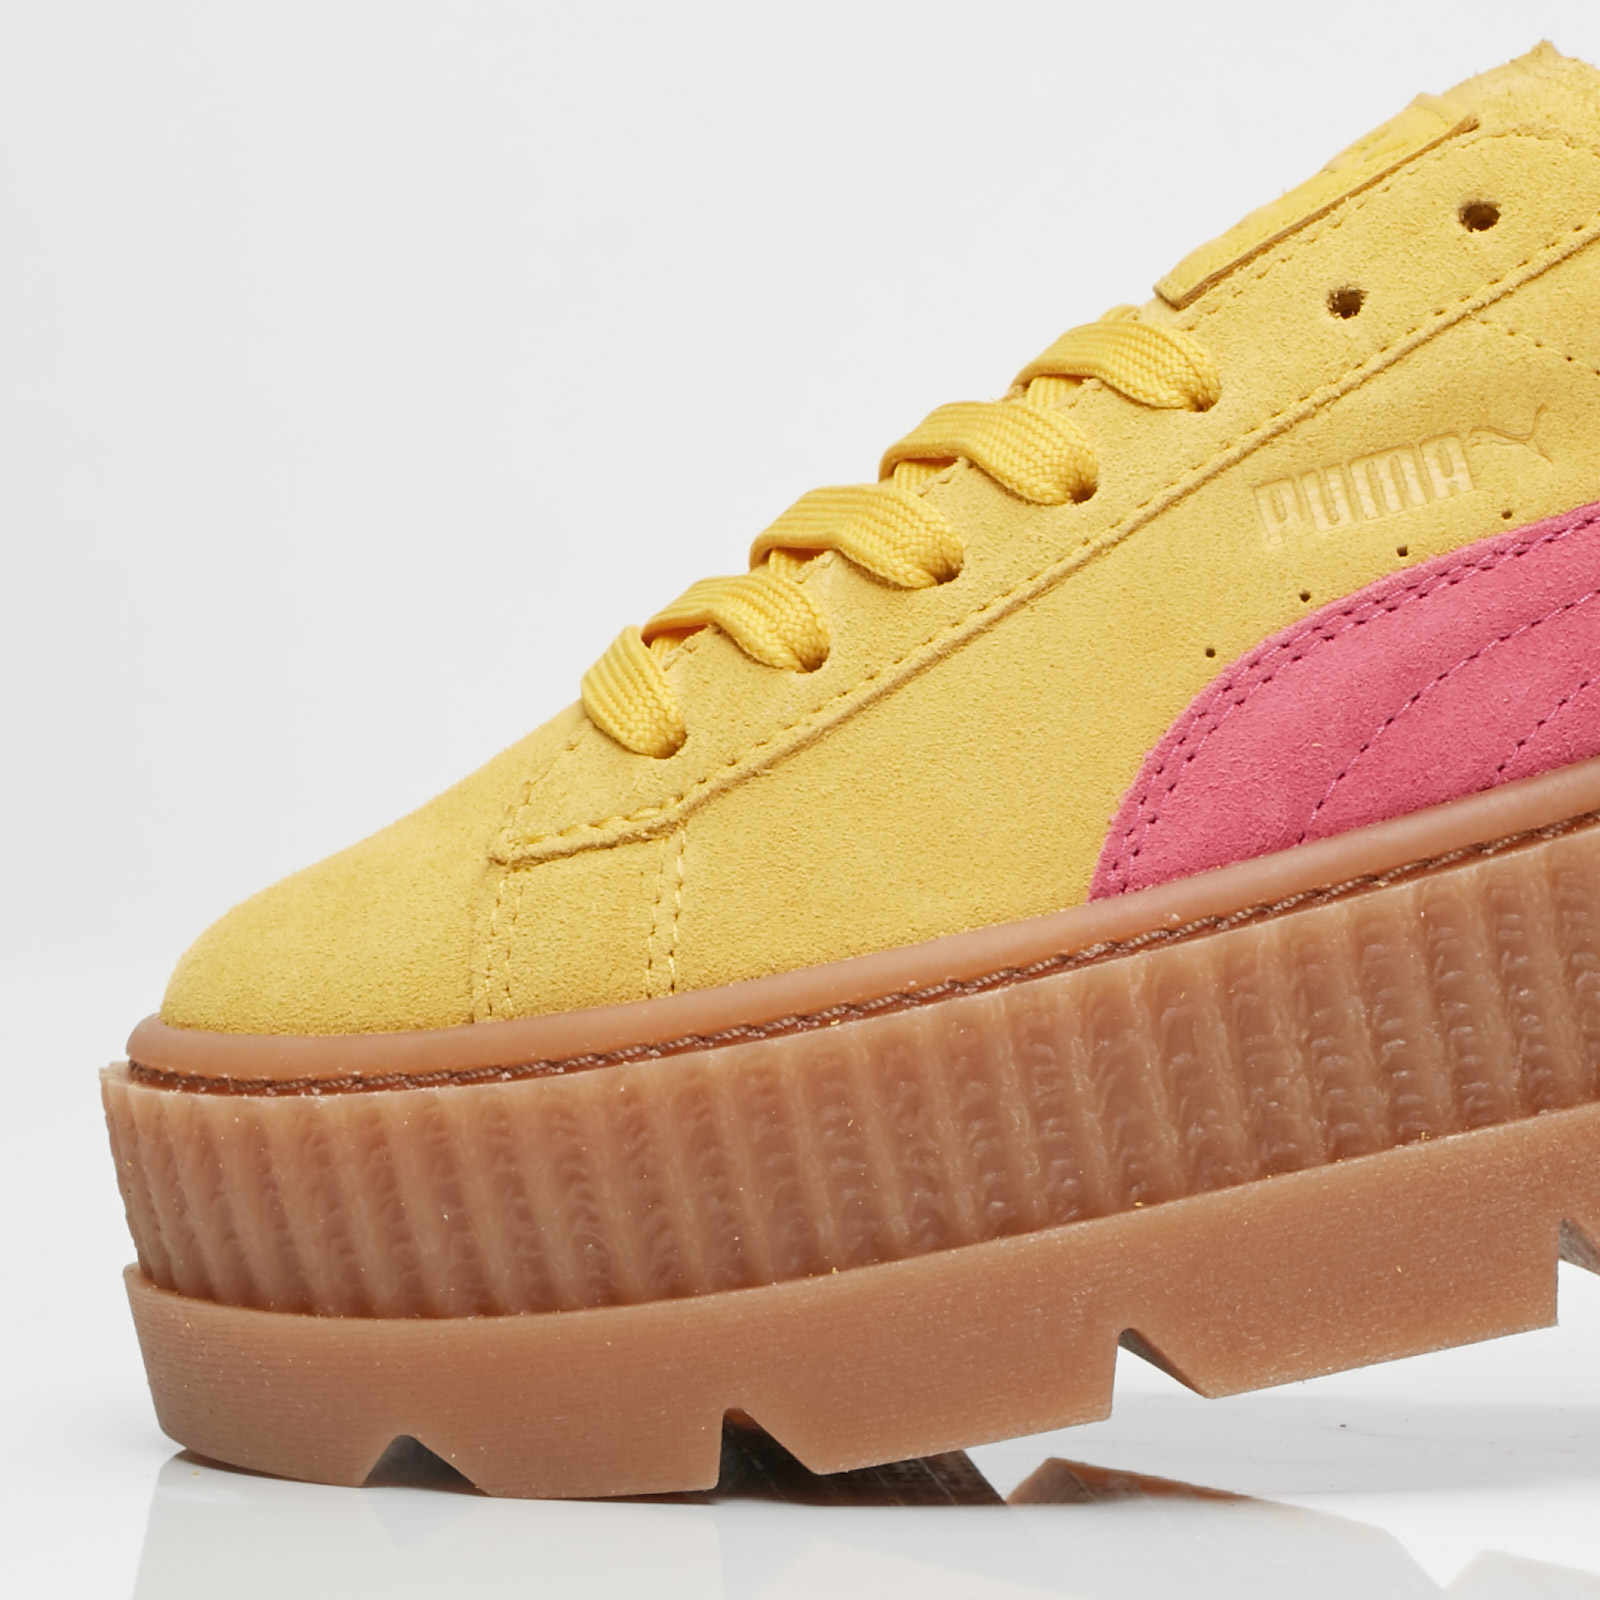 cc269ebd584 Puma Cleated Creeper Suede Wns - 366268-03 - Sneakersnstuff ...